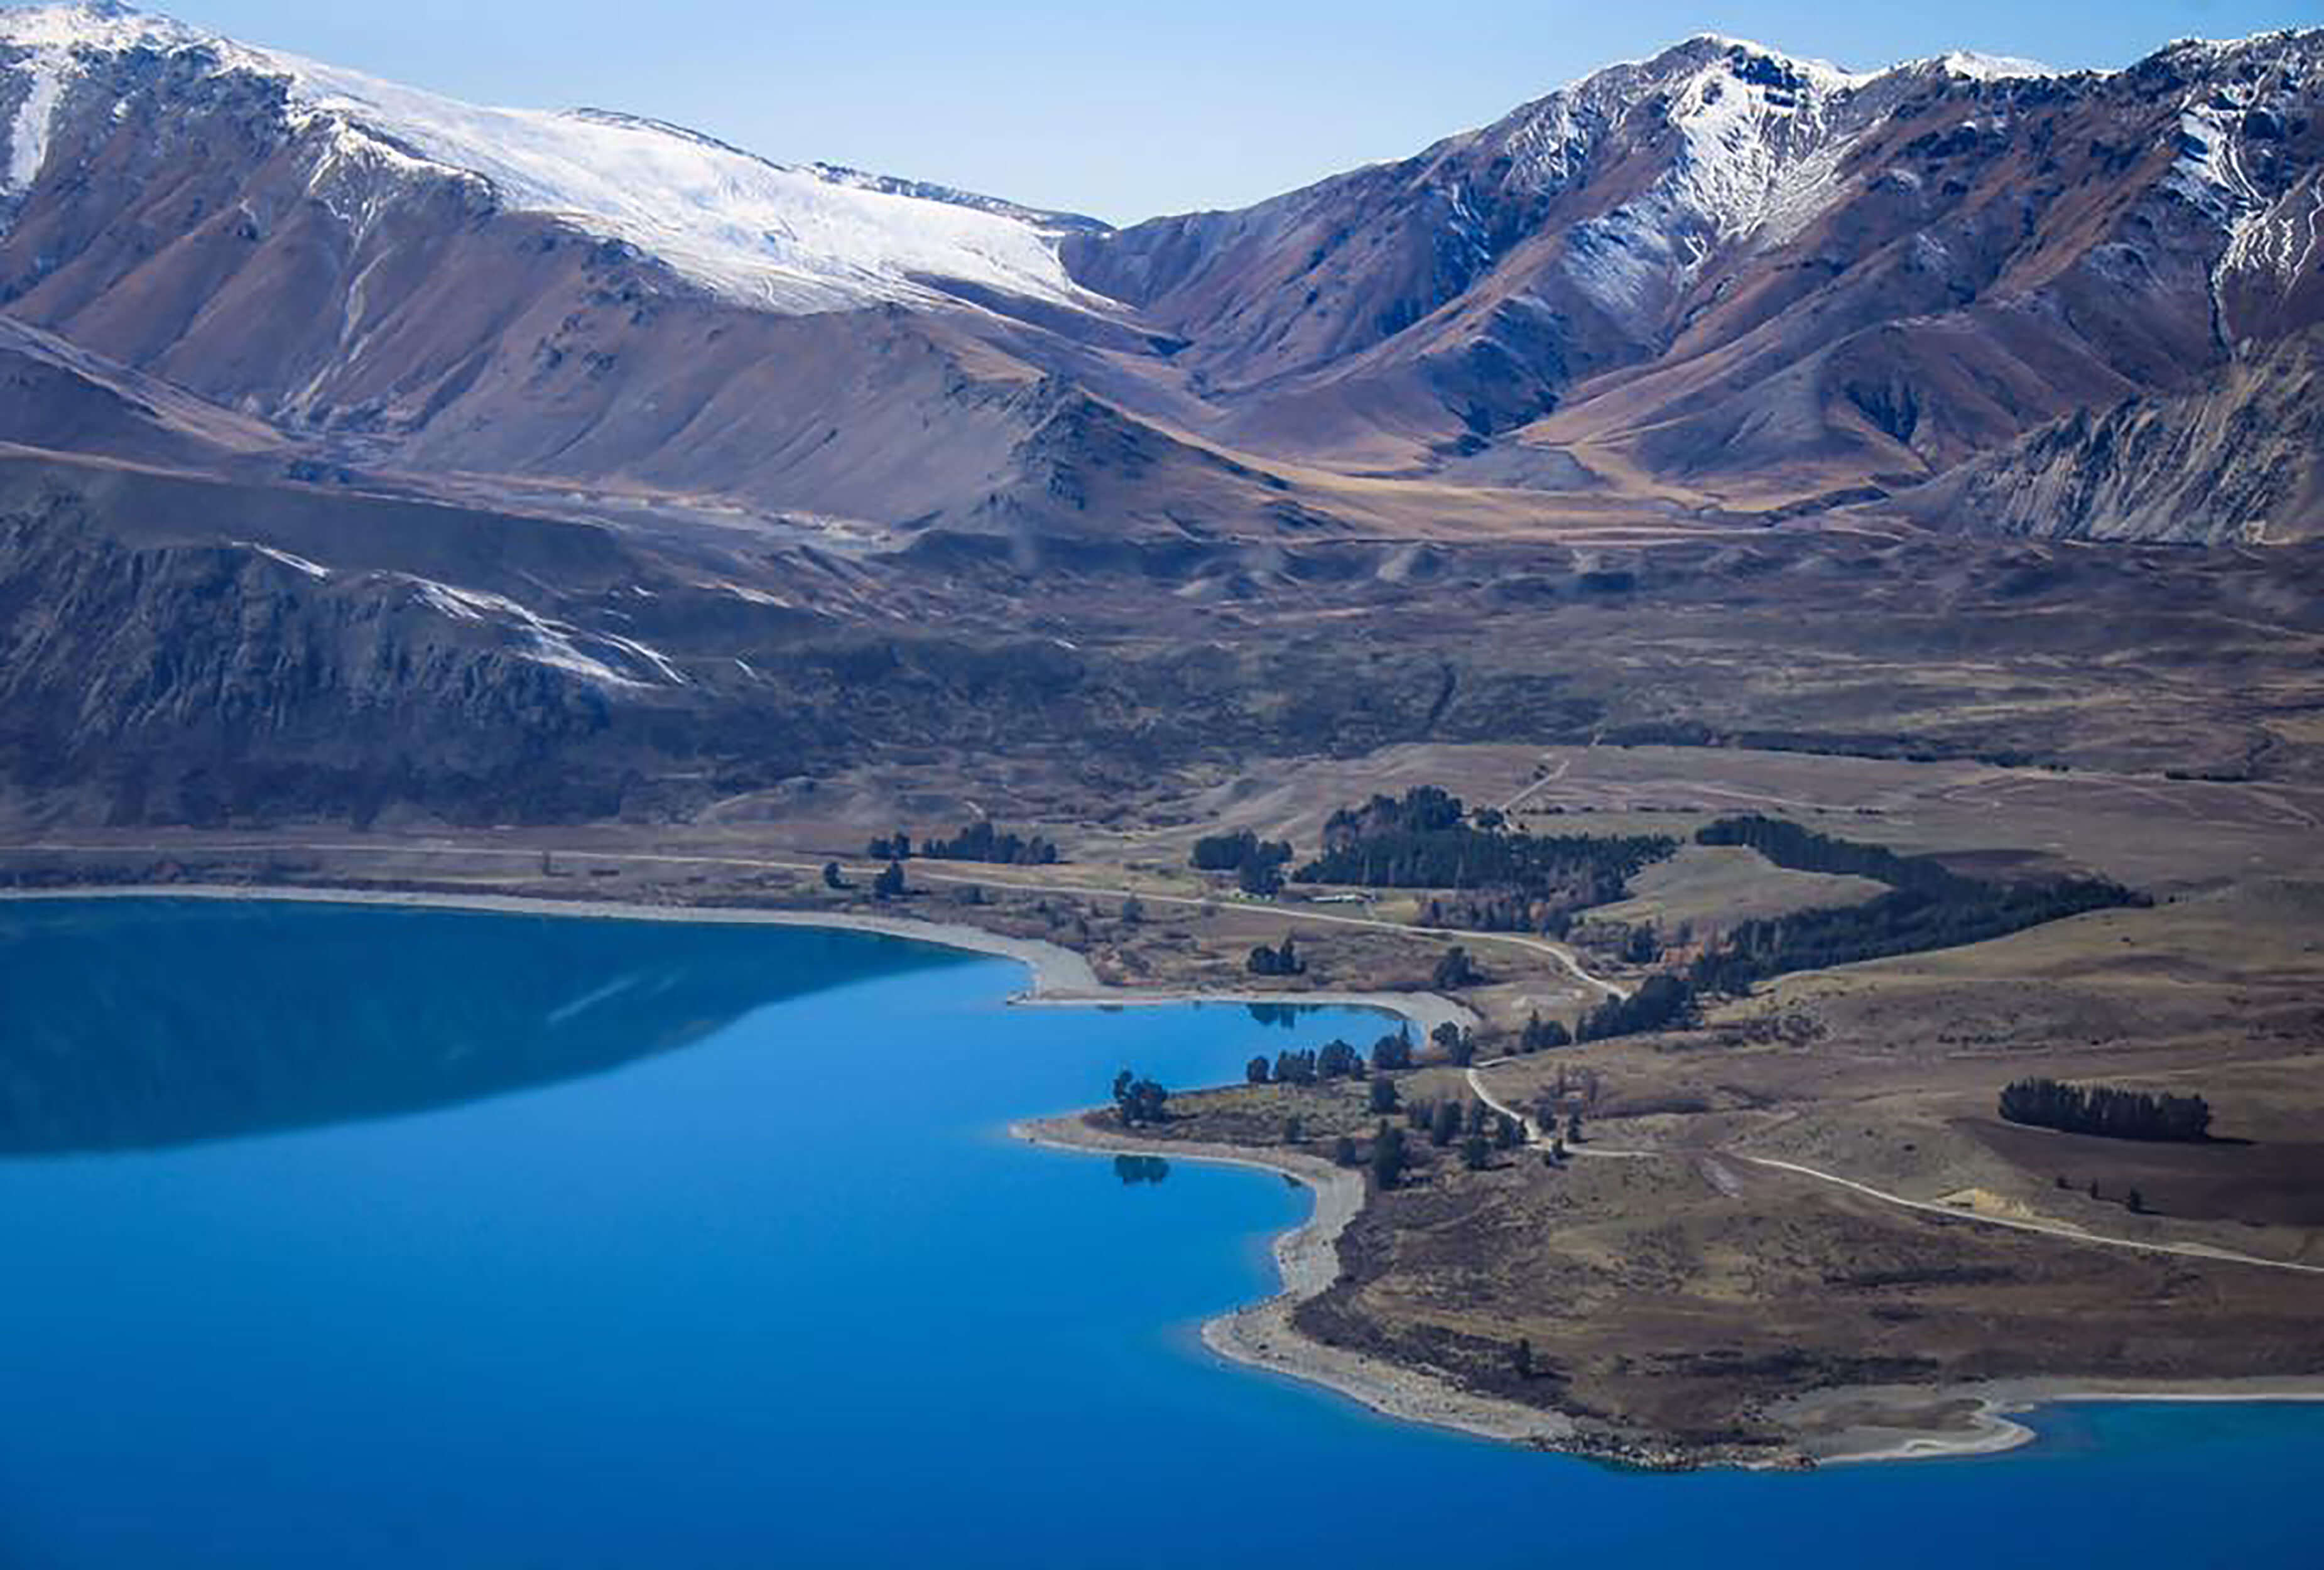 Aerial view of Lake Tekapo and landscape